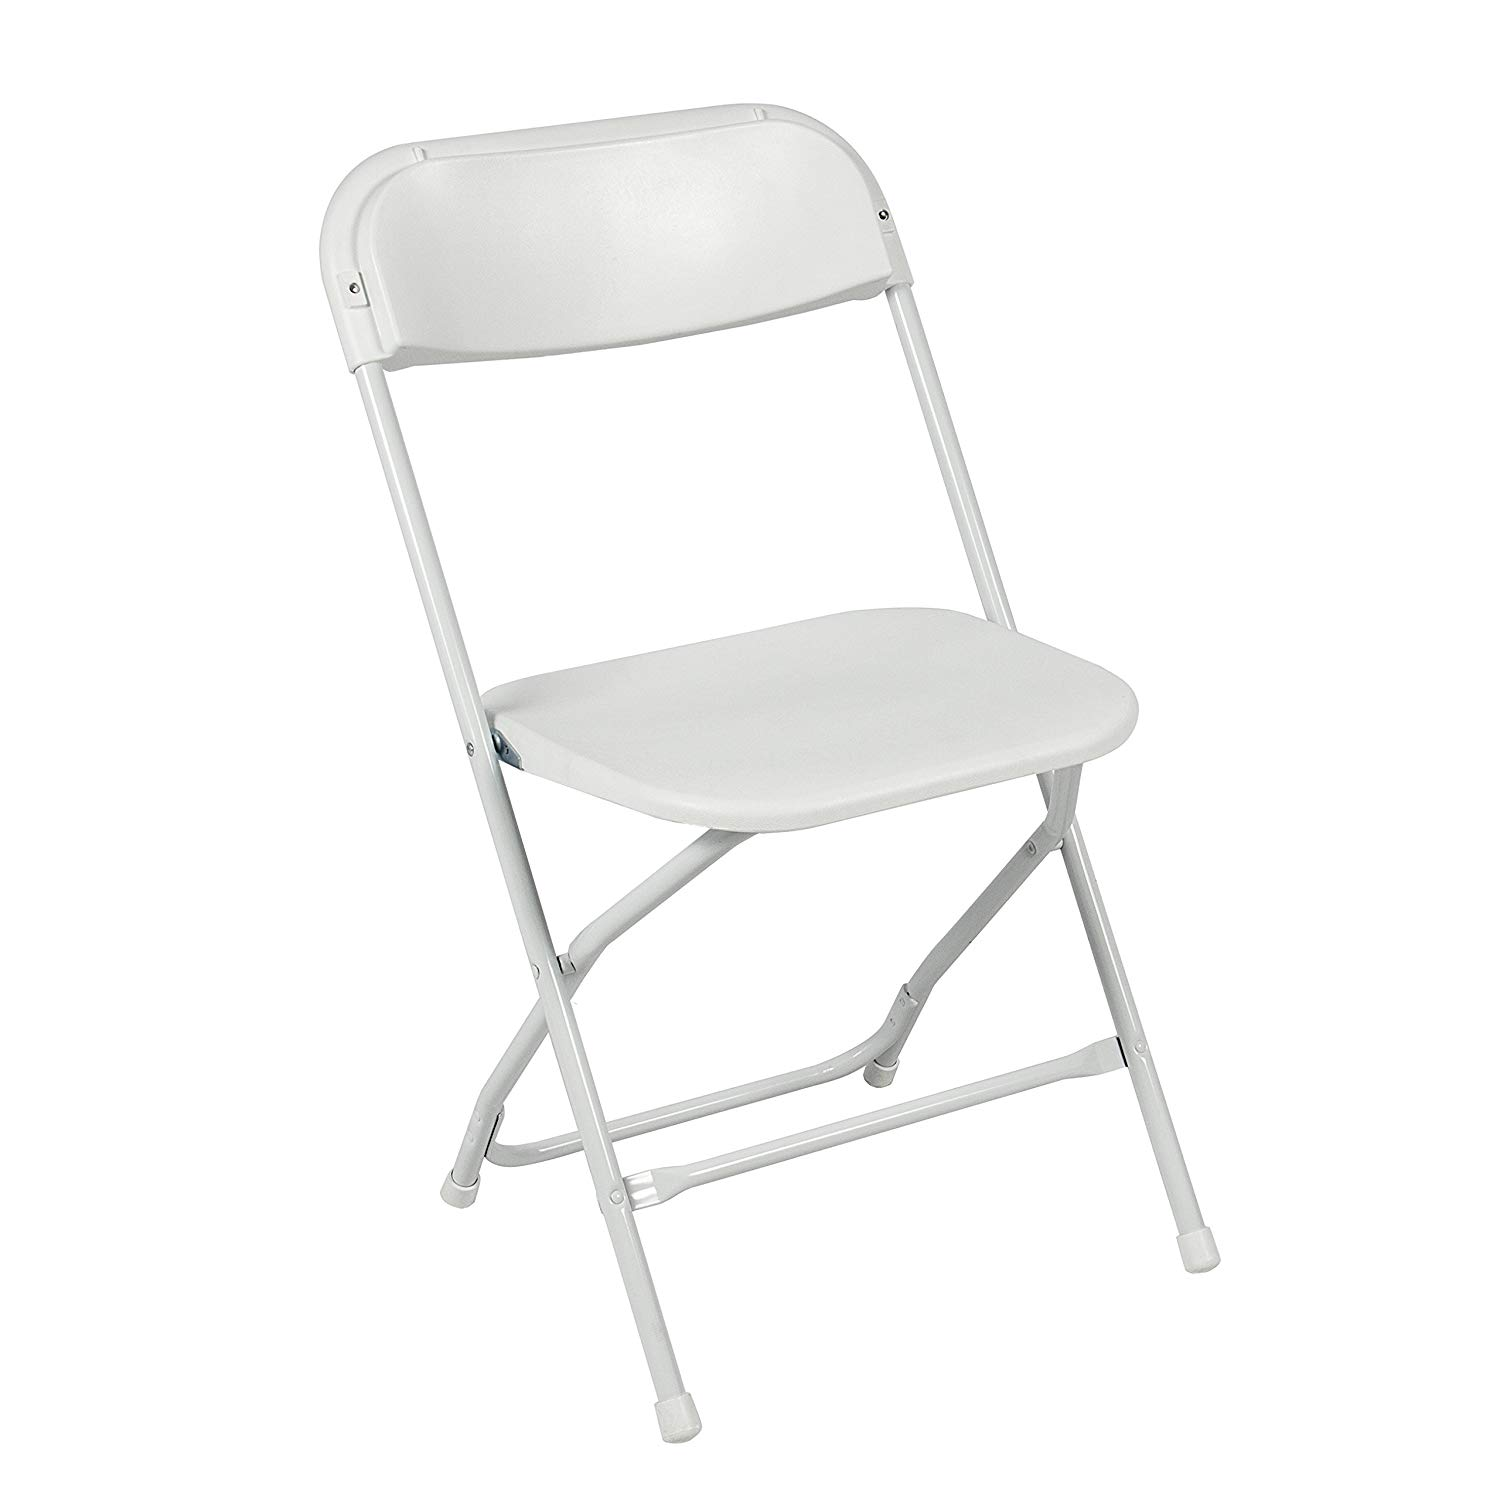 folding chair amazon.com: best choice products 5 commercial white plastic folding chairs GXPFILF